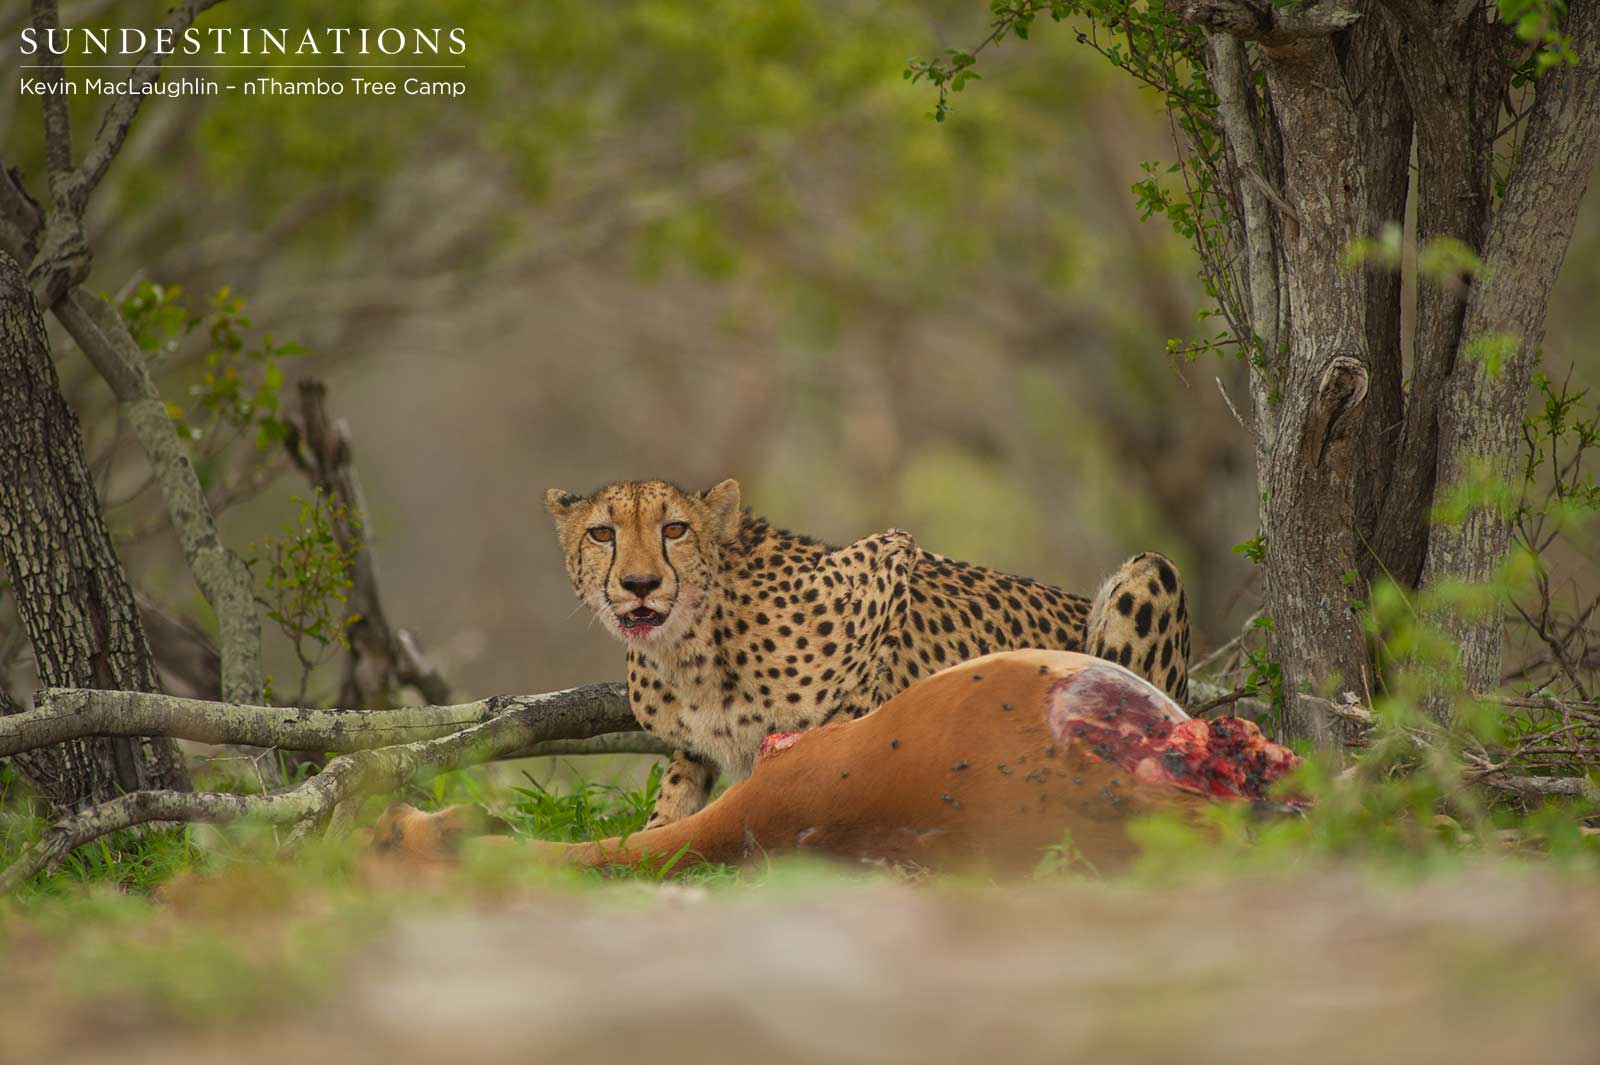 Honour Among Thieves: Leopard Steals Cheetah's Kill